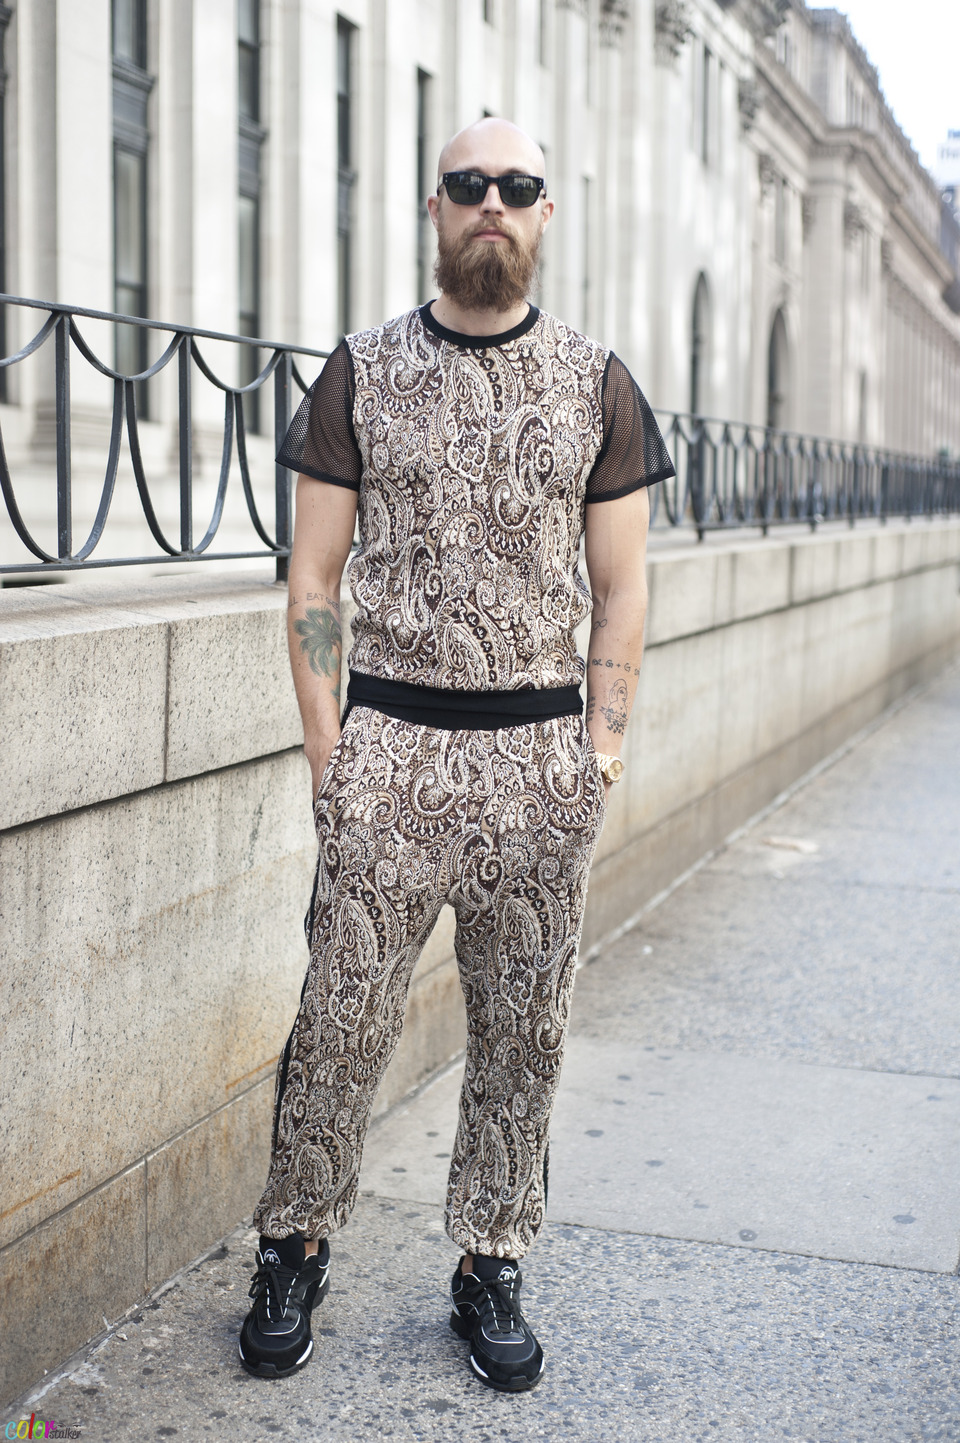 There are alternatives to tracksuits!Keep it monochromatic or go wild on prints, colors and textures.